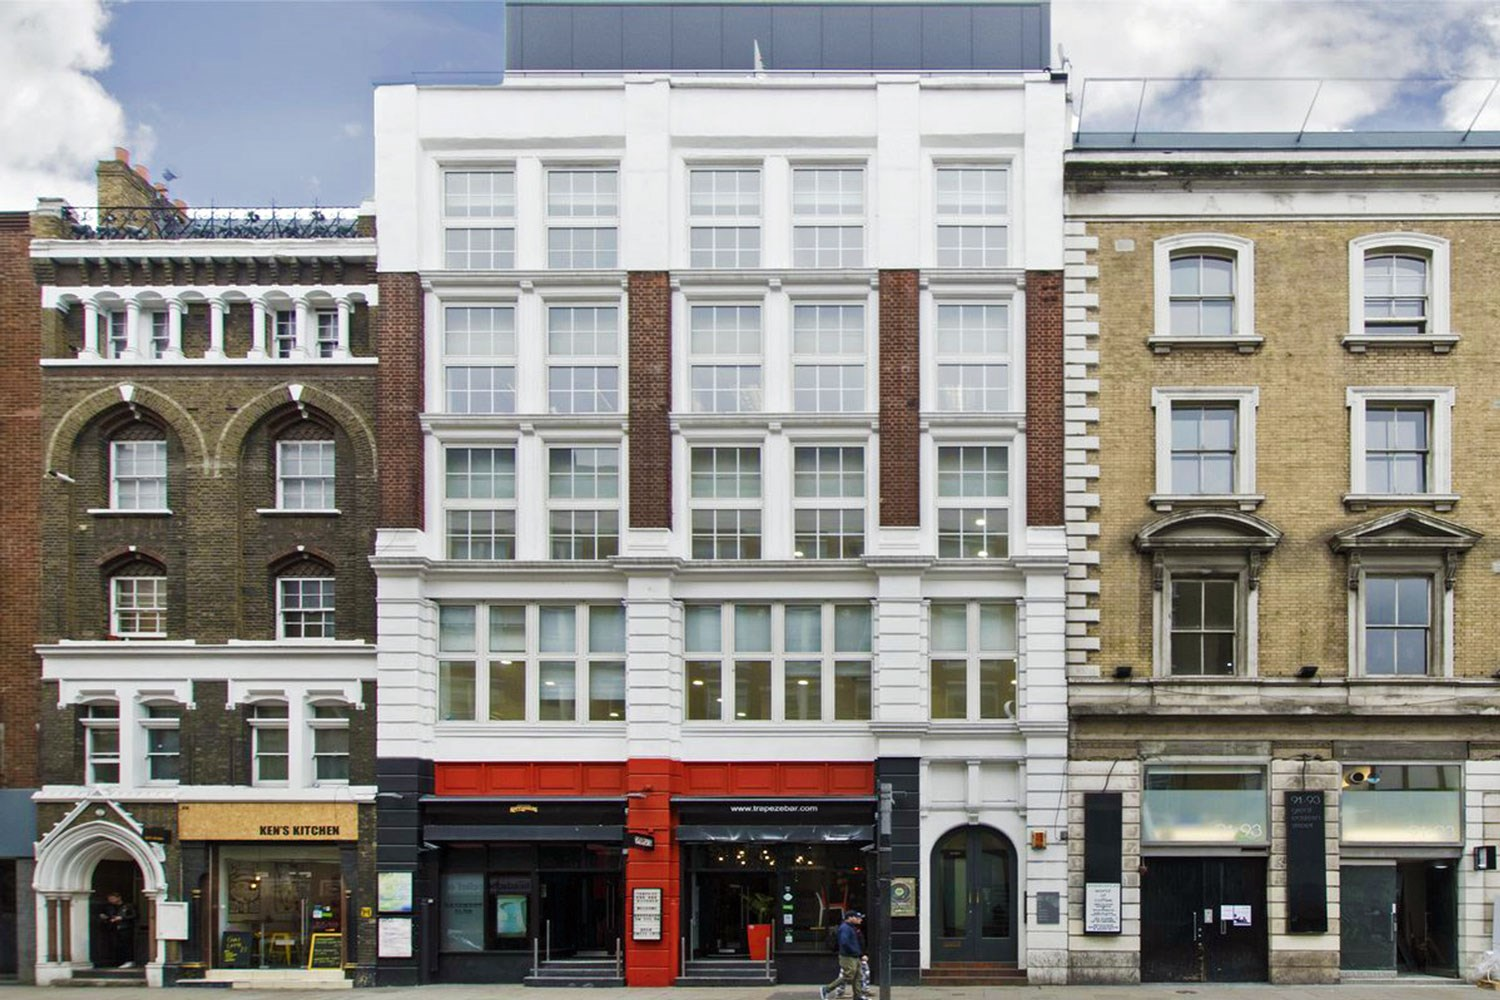 89 Great Eastern Street Shoreditch London EC2A 3HY Office For Rent External